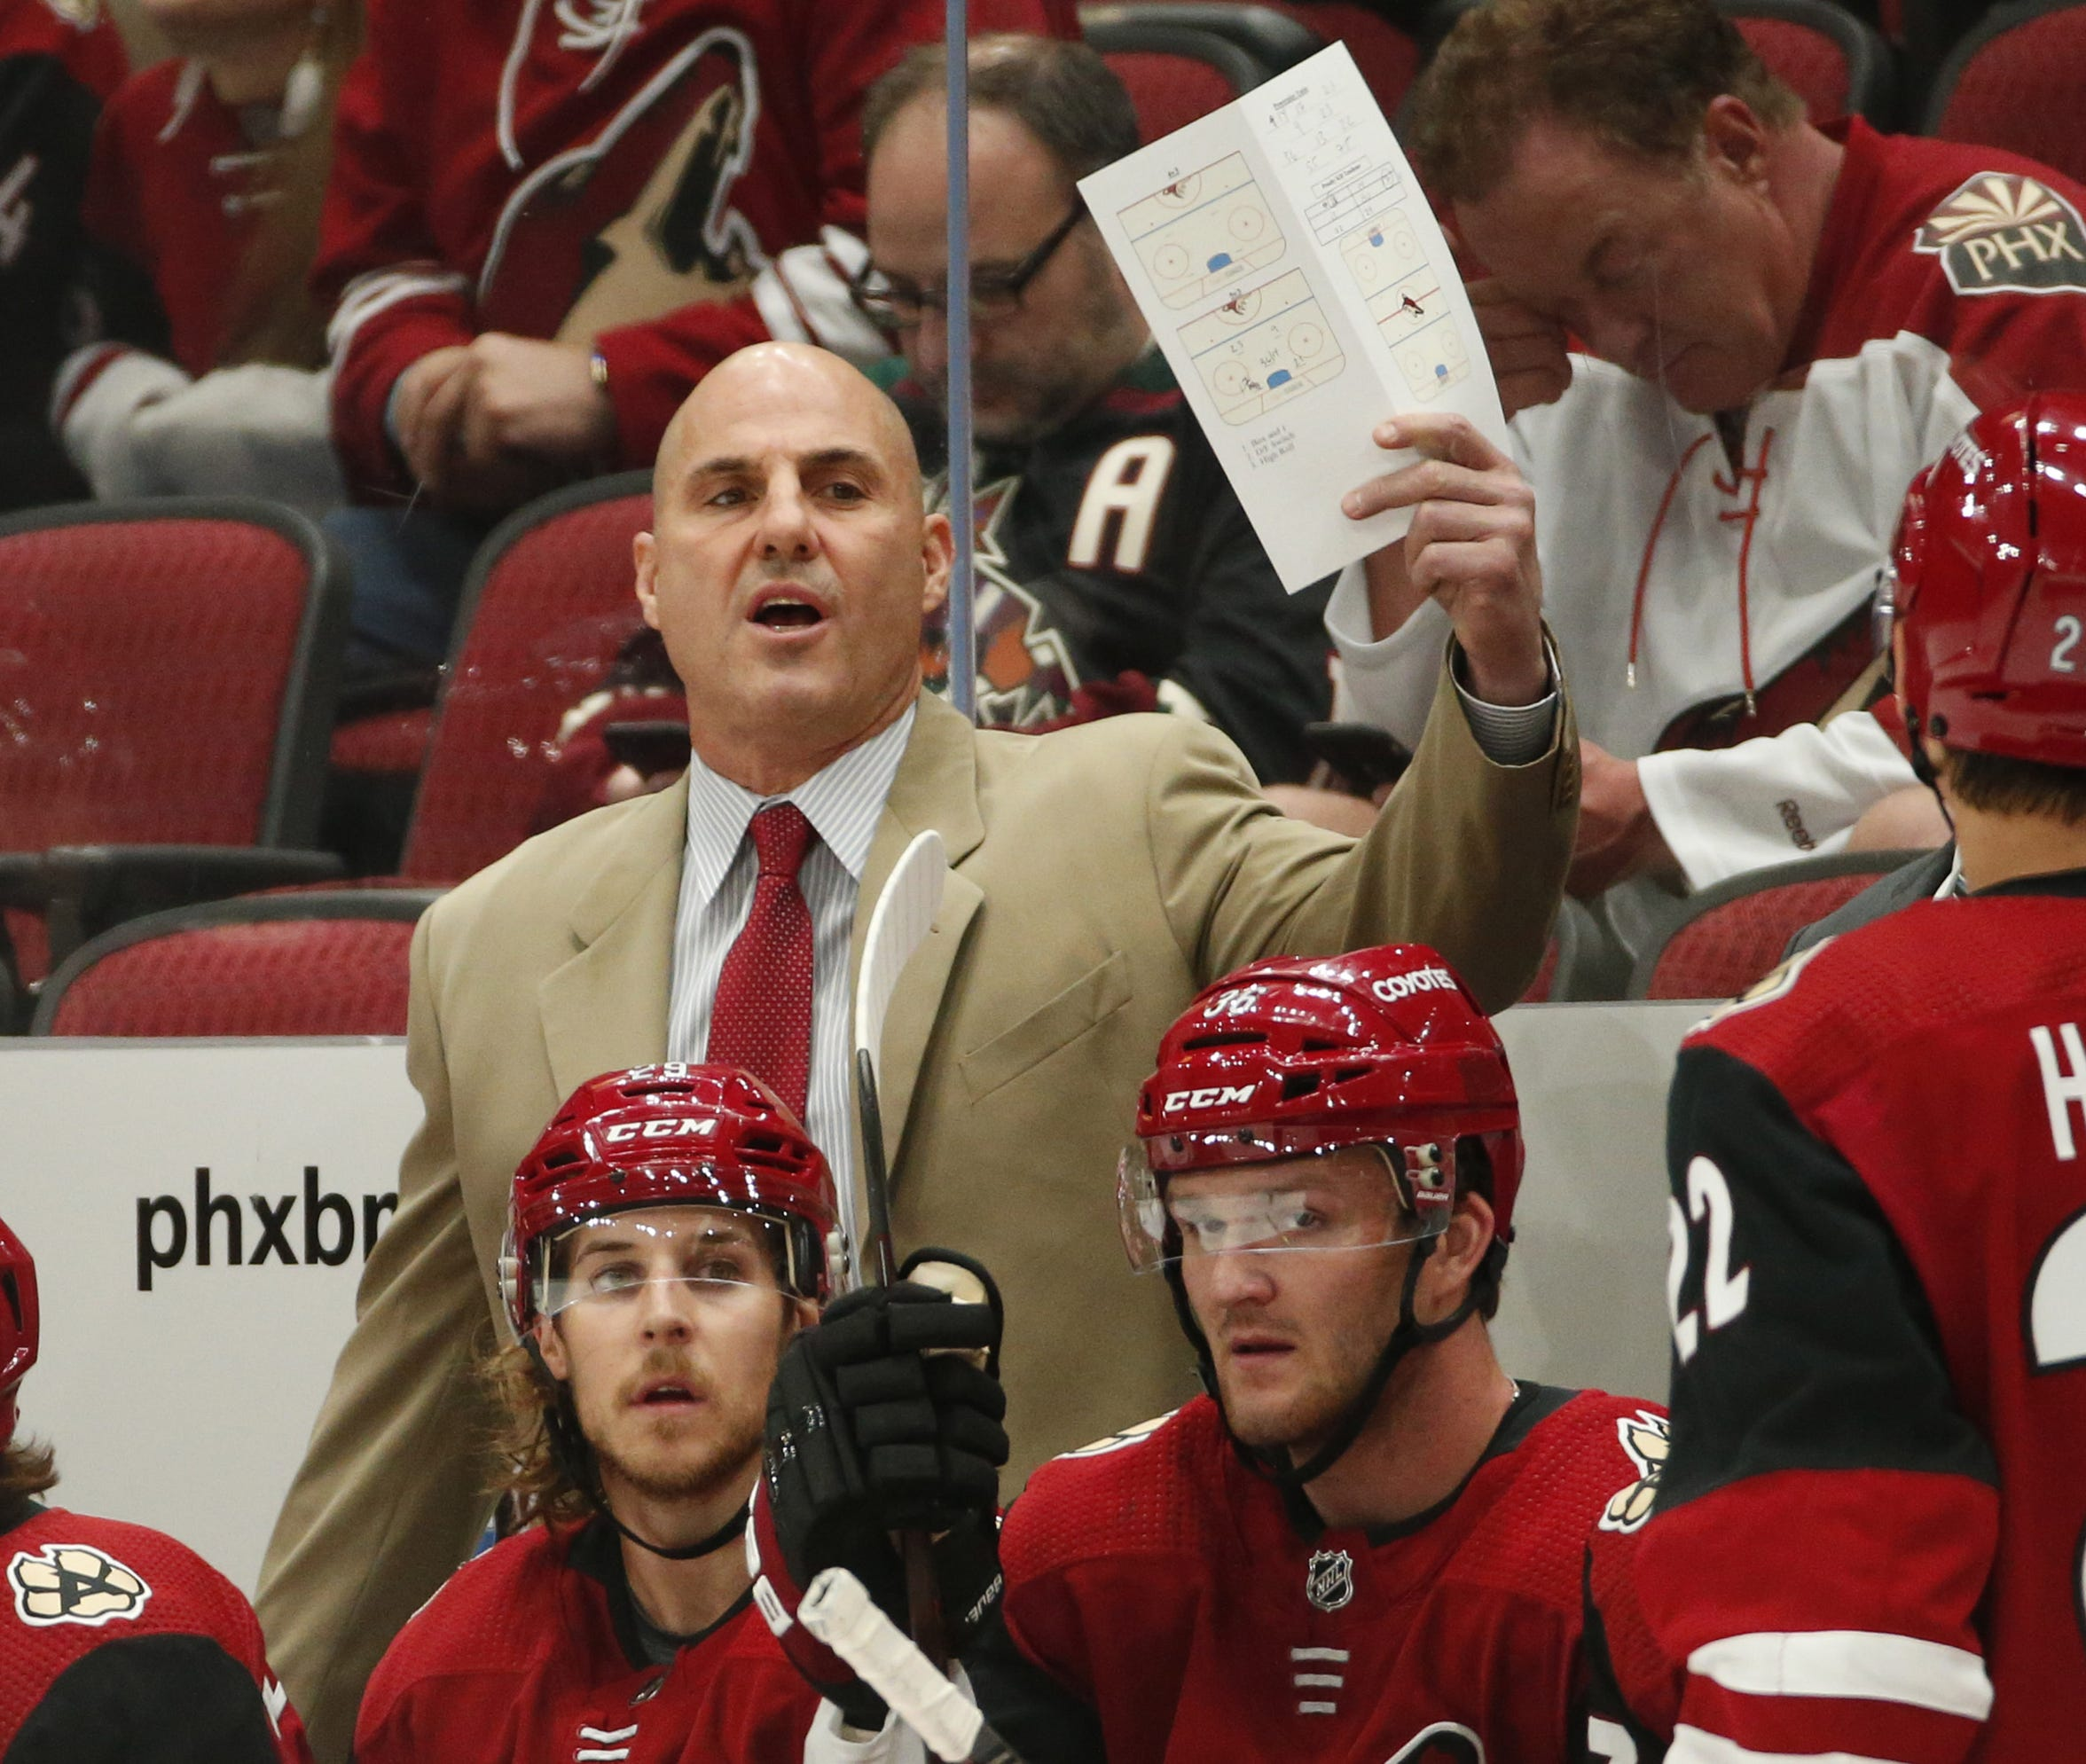 Coyotes coach Rick Tocchet directs his players during a preseason game against the Kings at Gila River Arena.